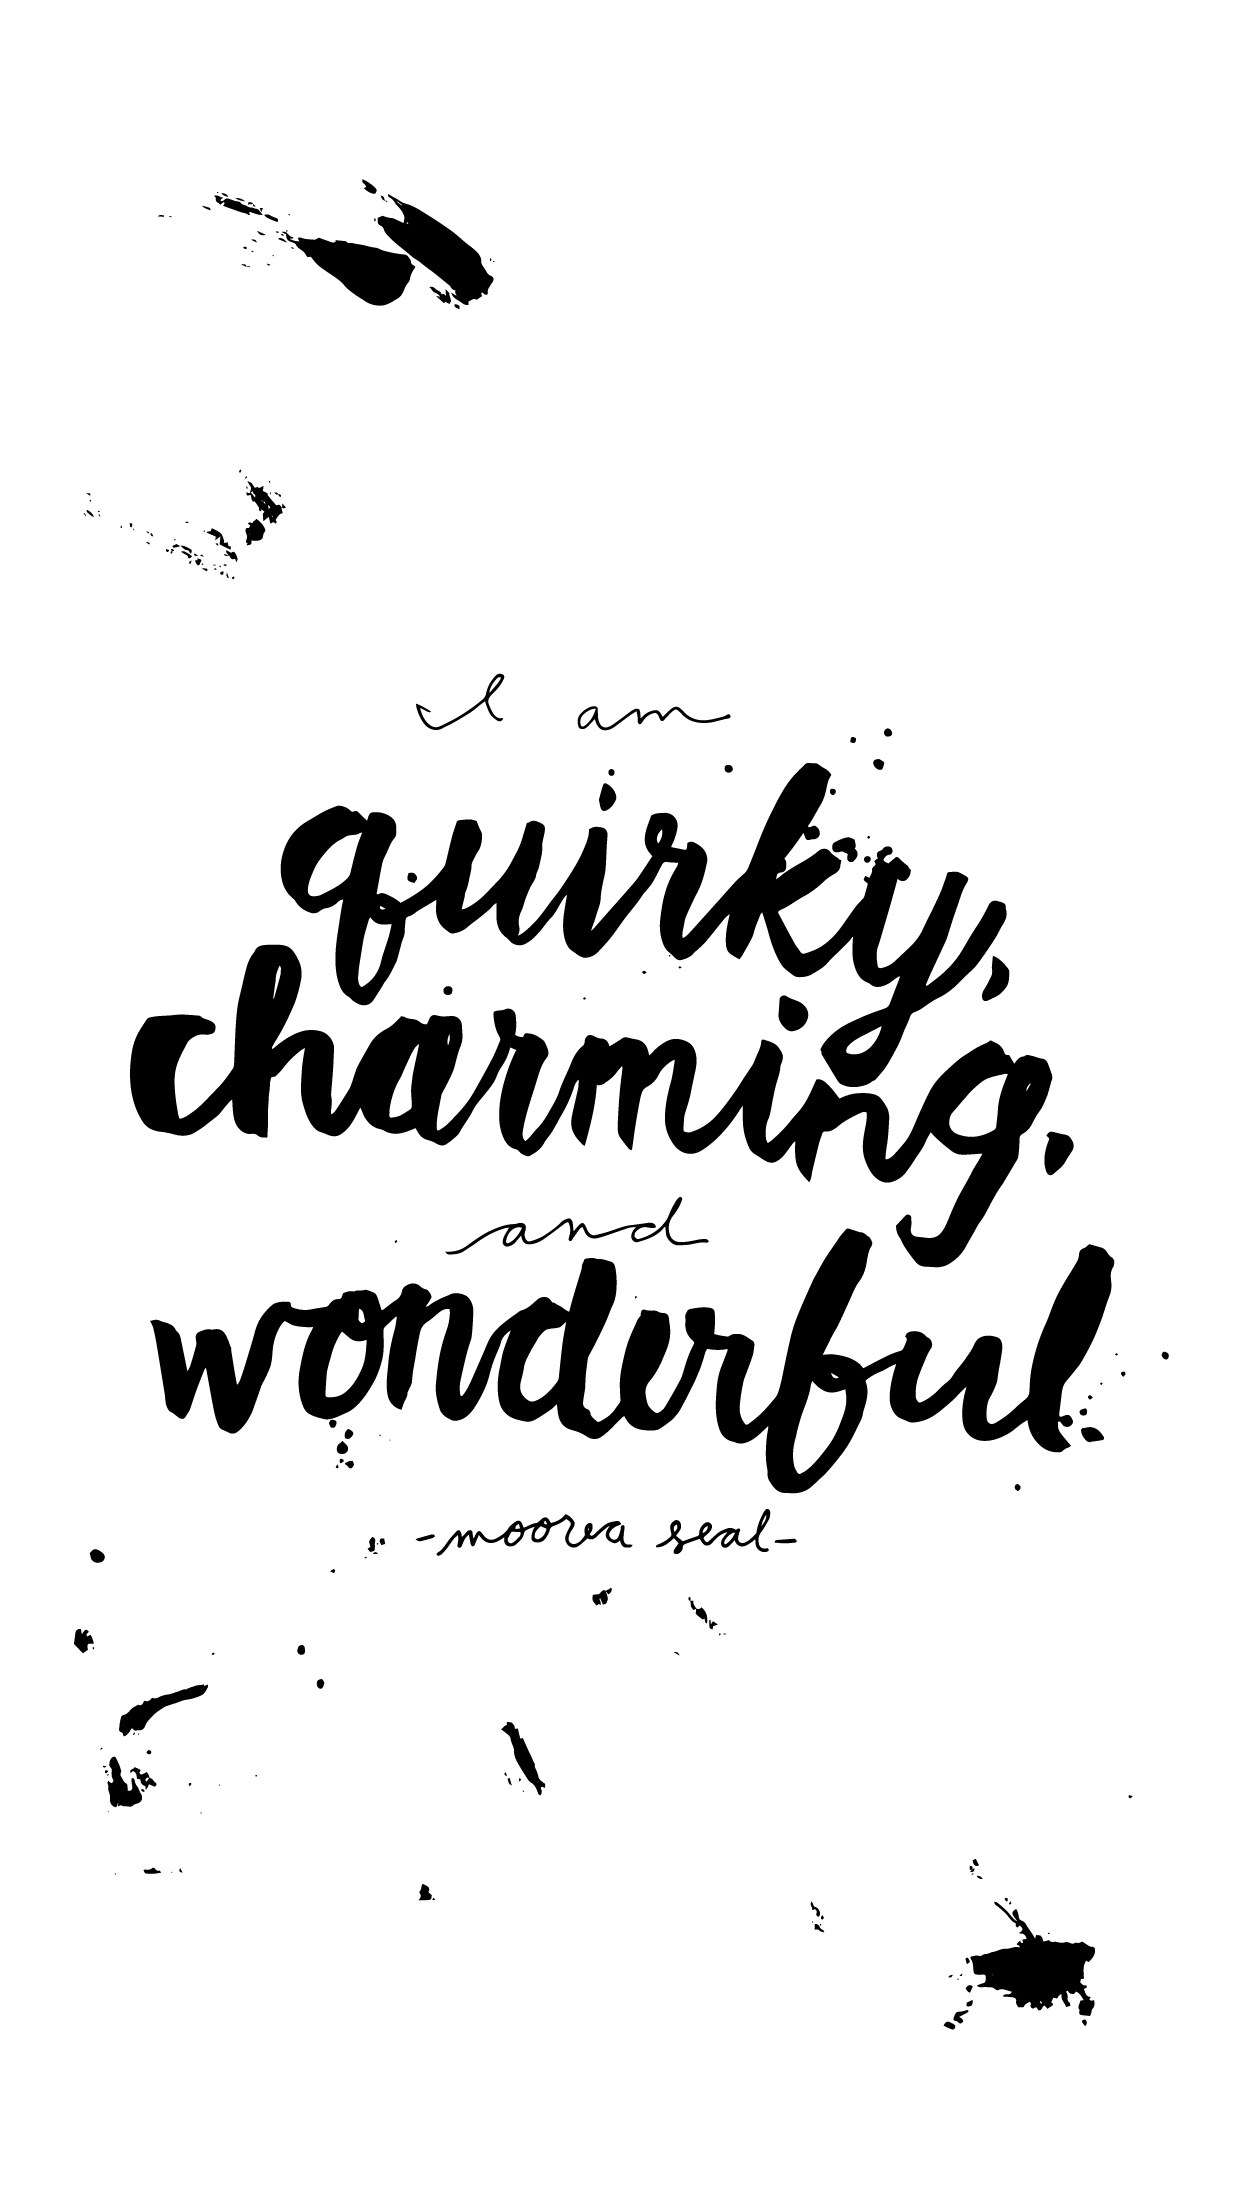 Free Printable Or Iphone Wallpaper Quirky Charming Wonderful